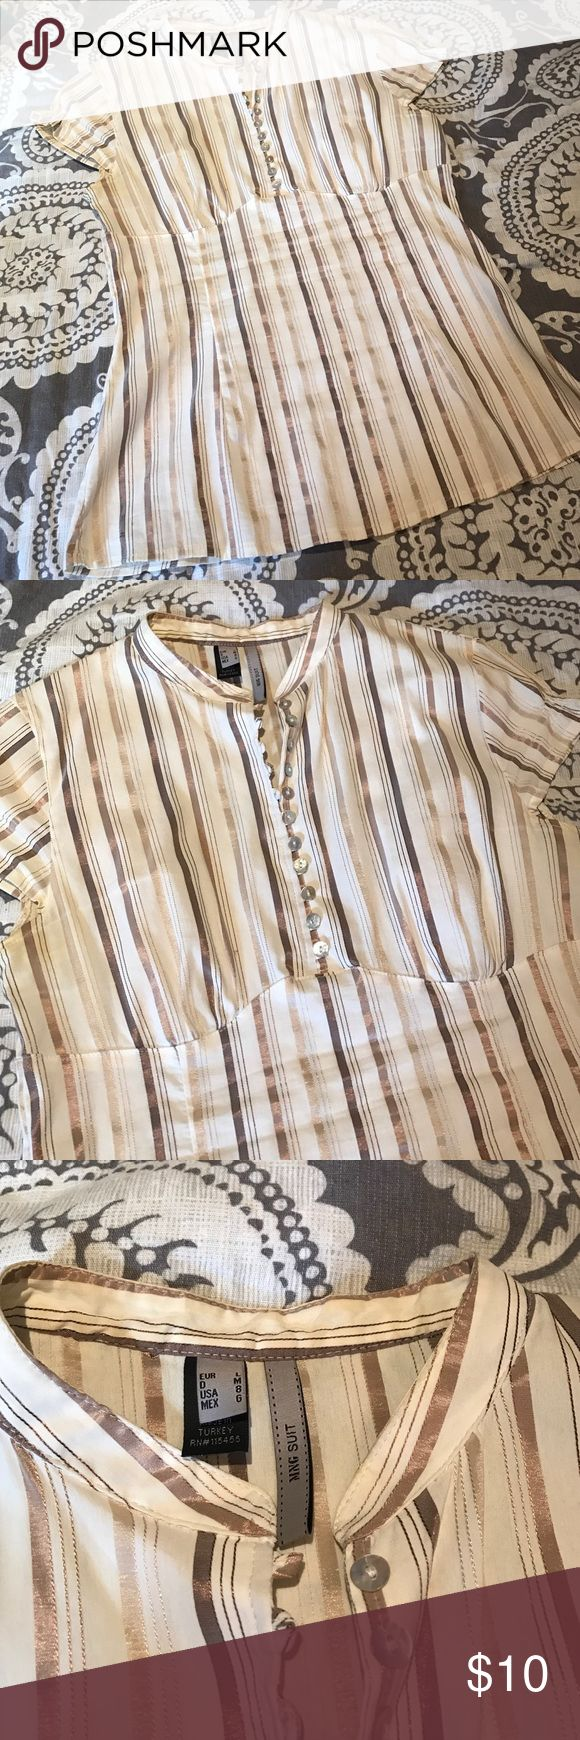 MNG silky dreas top 💟 excellent condition mango silk stripped top womens size 8 Mango Tops Blouses